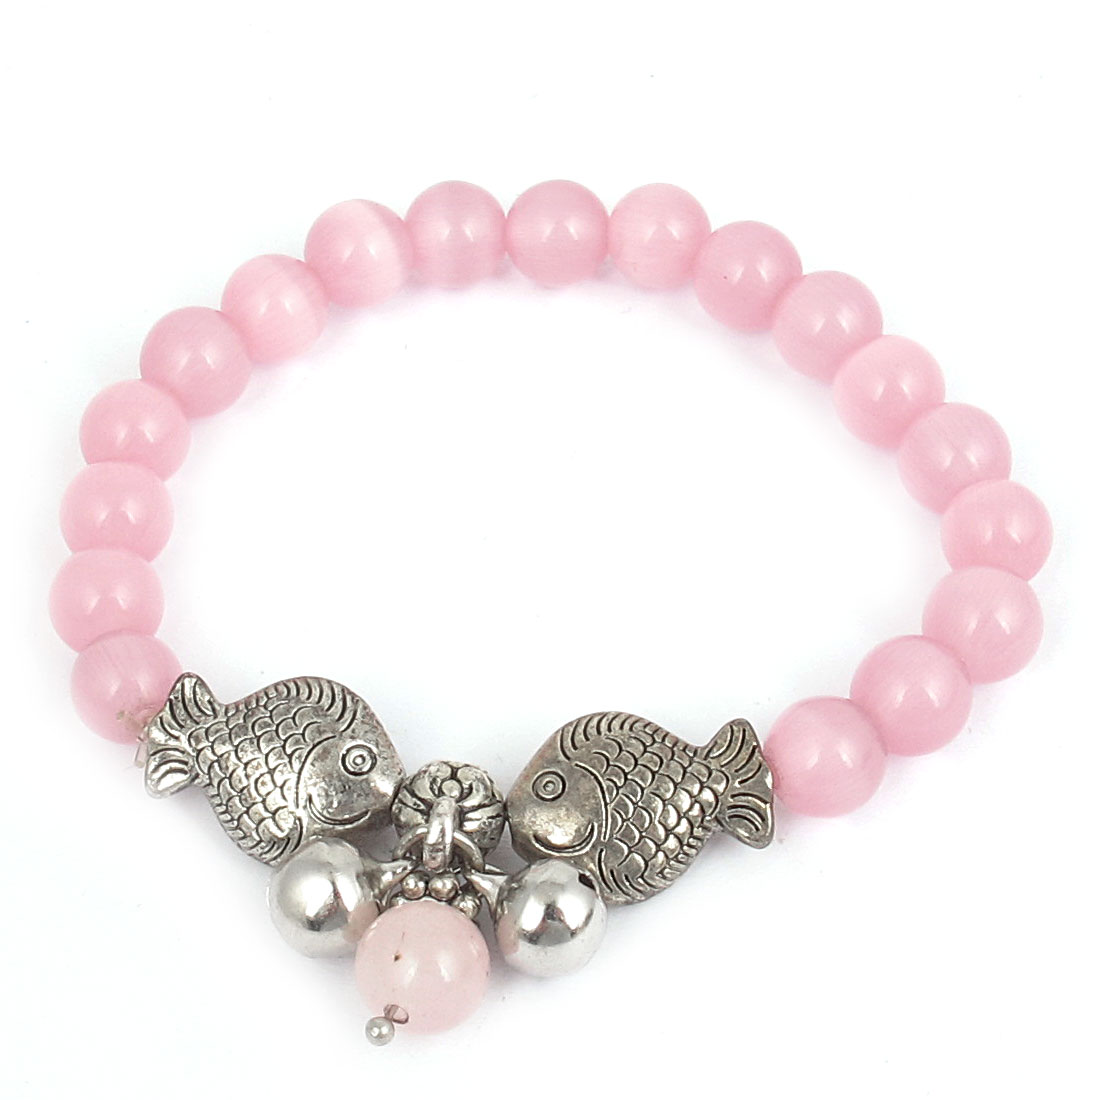 Fish Detail Round Opal Bead Wrist Ornament Bangle Bracelet Pink Silver Tone for Women